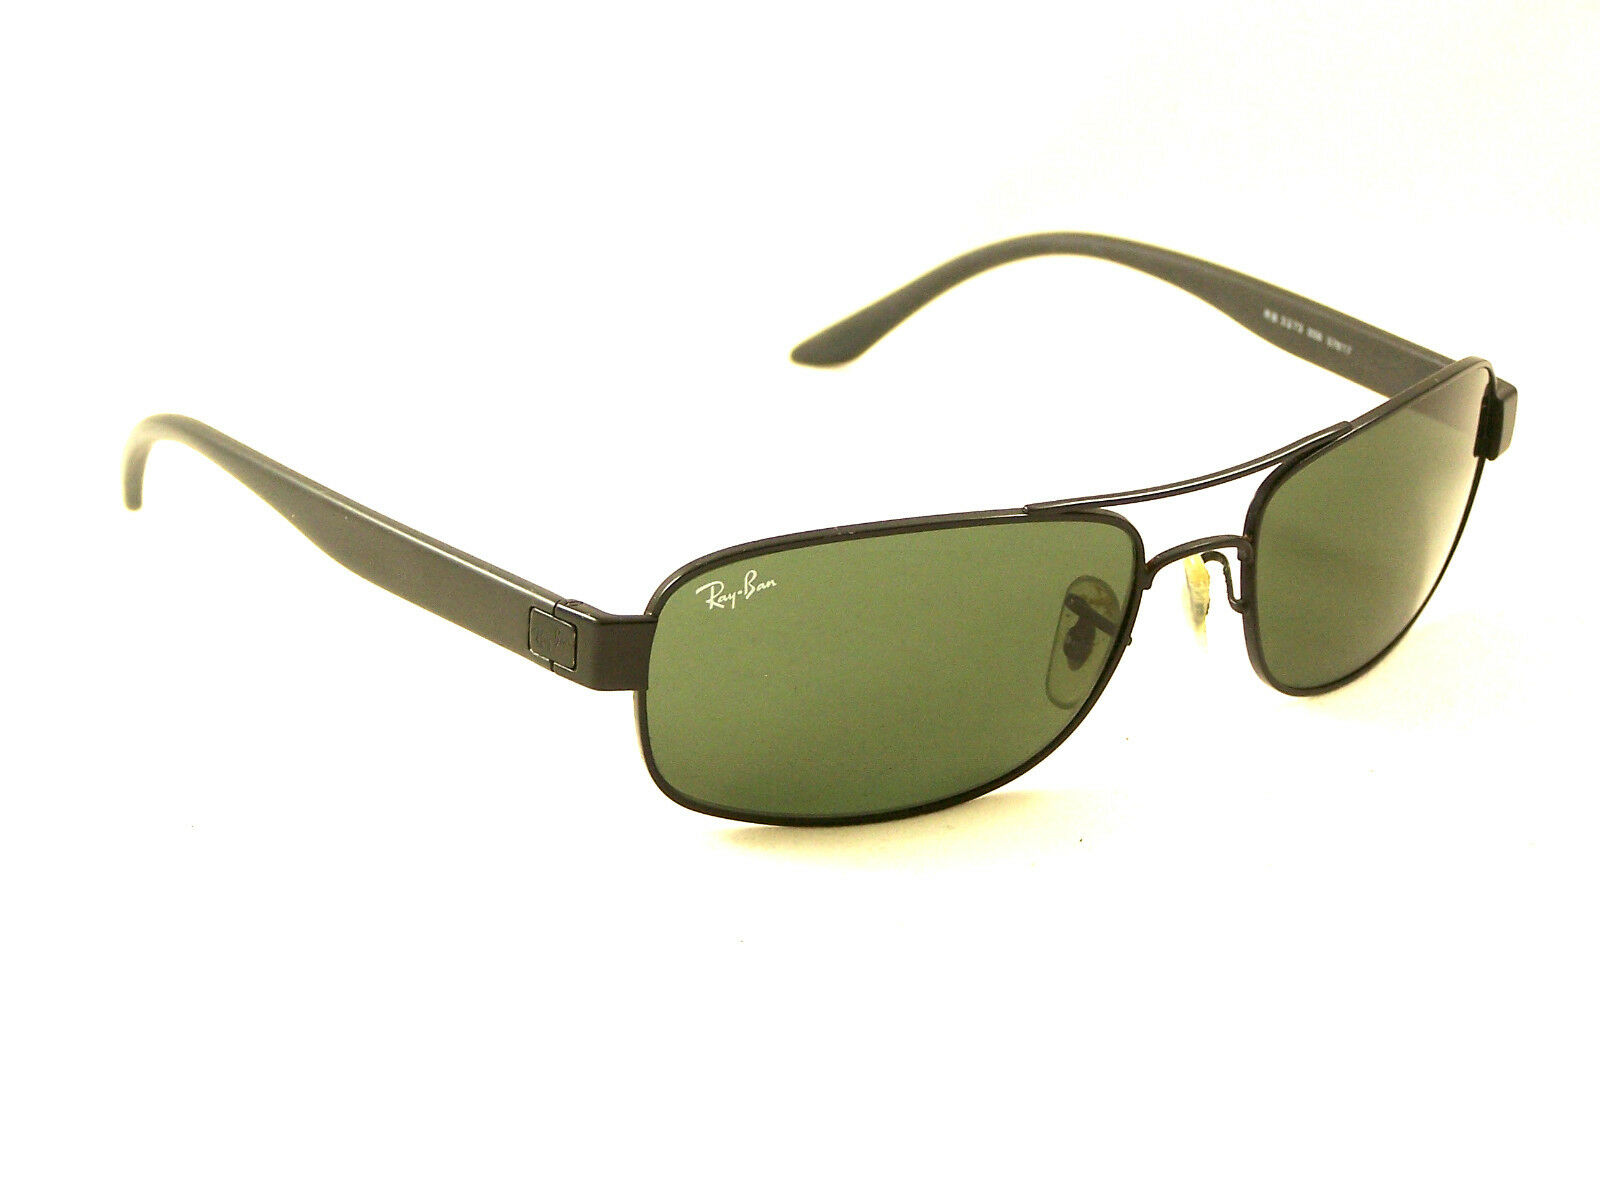 a1116183f2 Ray Ban Sunglasses New Lenses « Heritage Malta